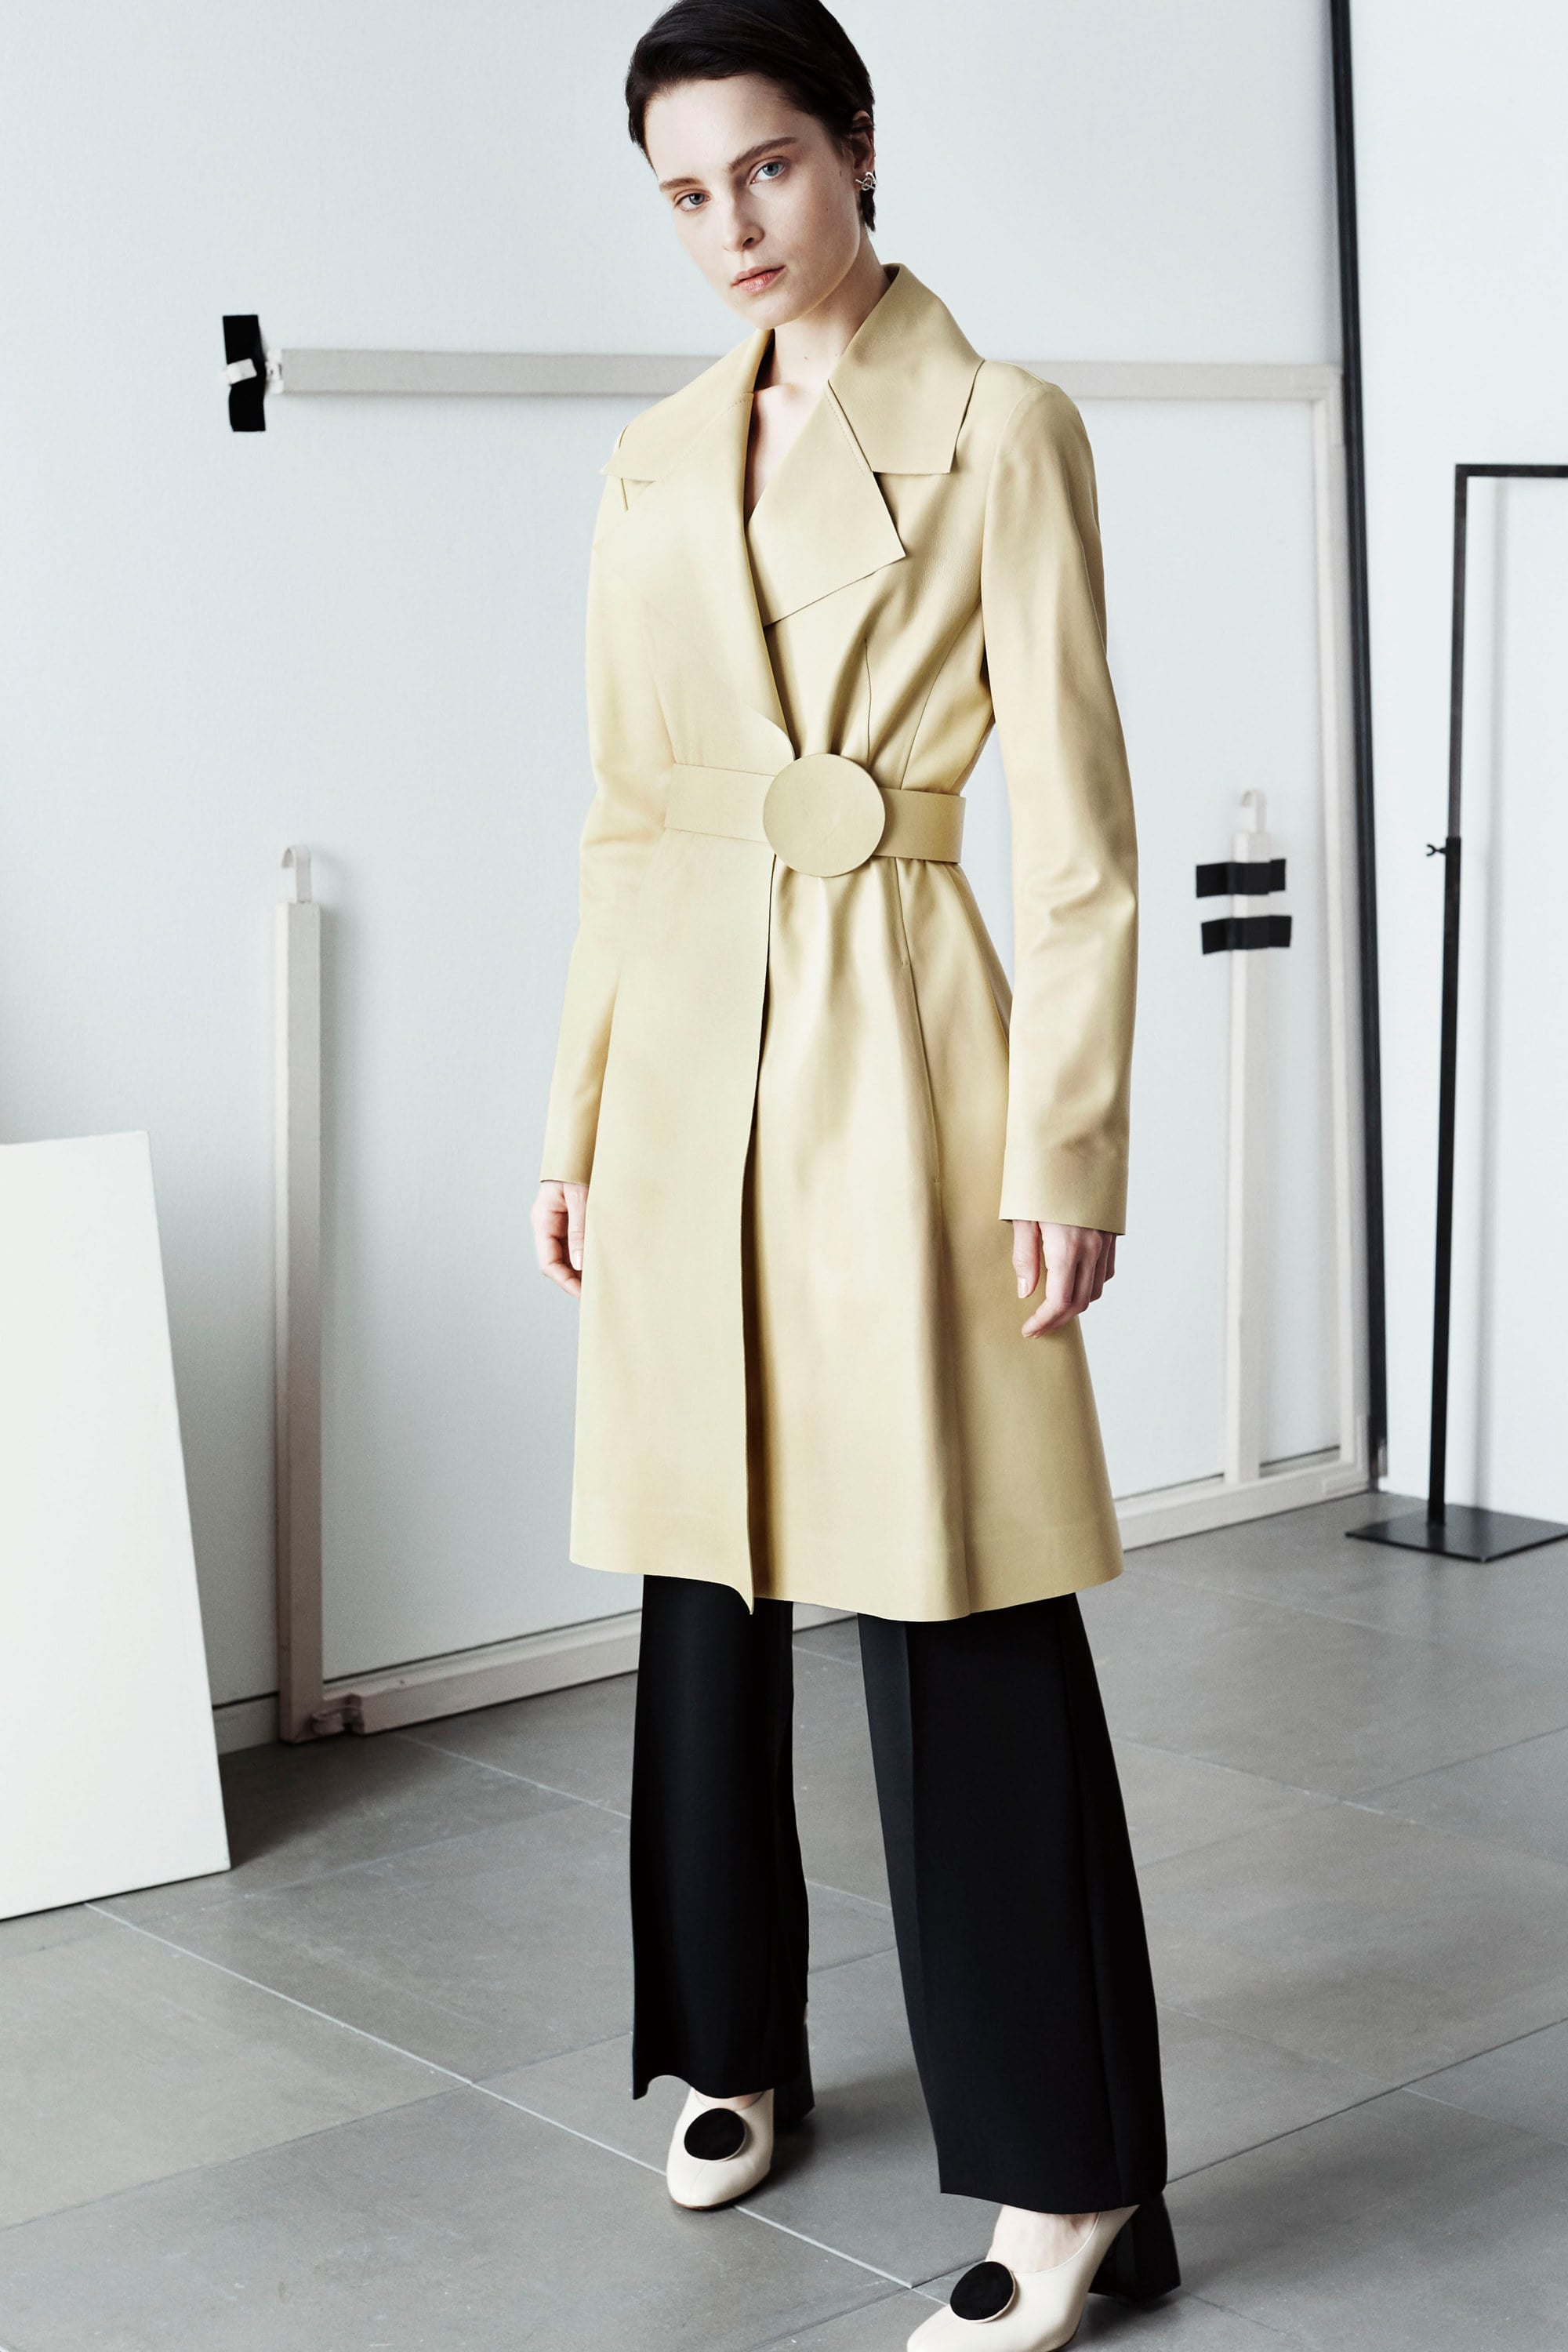 sportmax-pre-fall-2016-lookbook-25.jpg